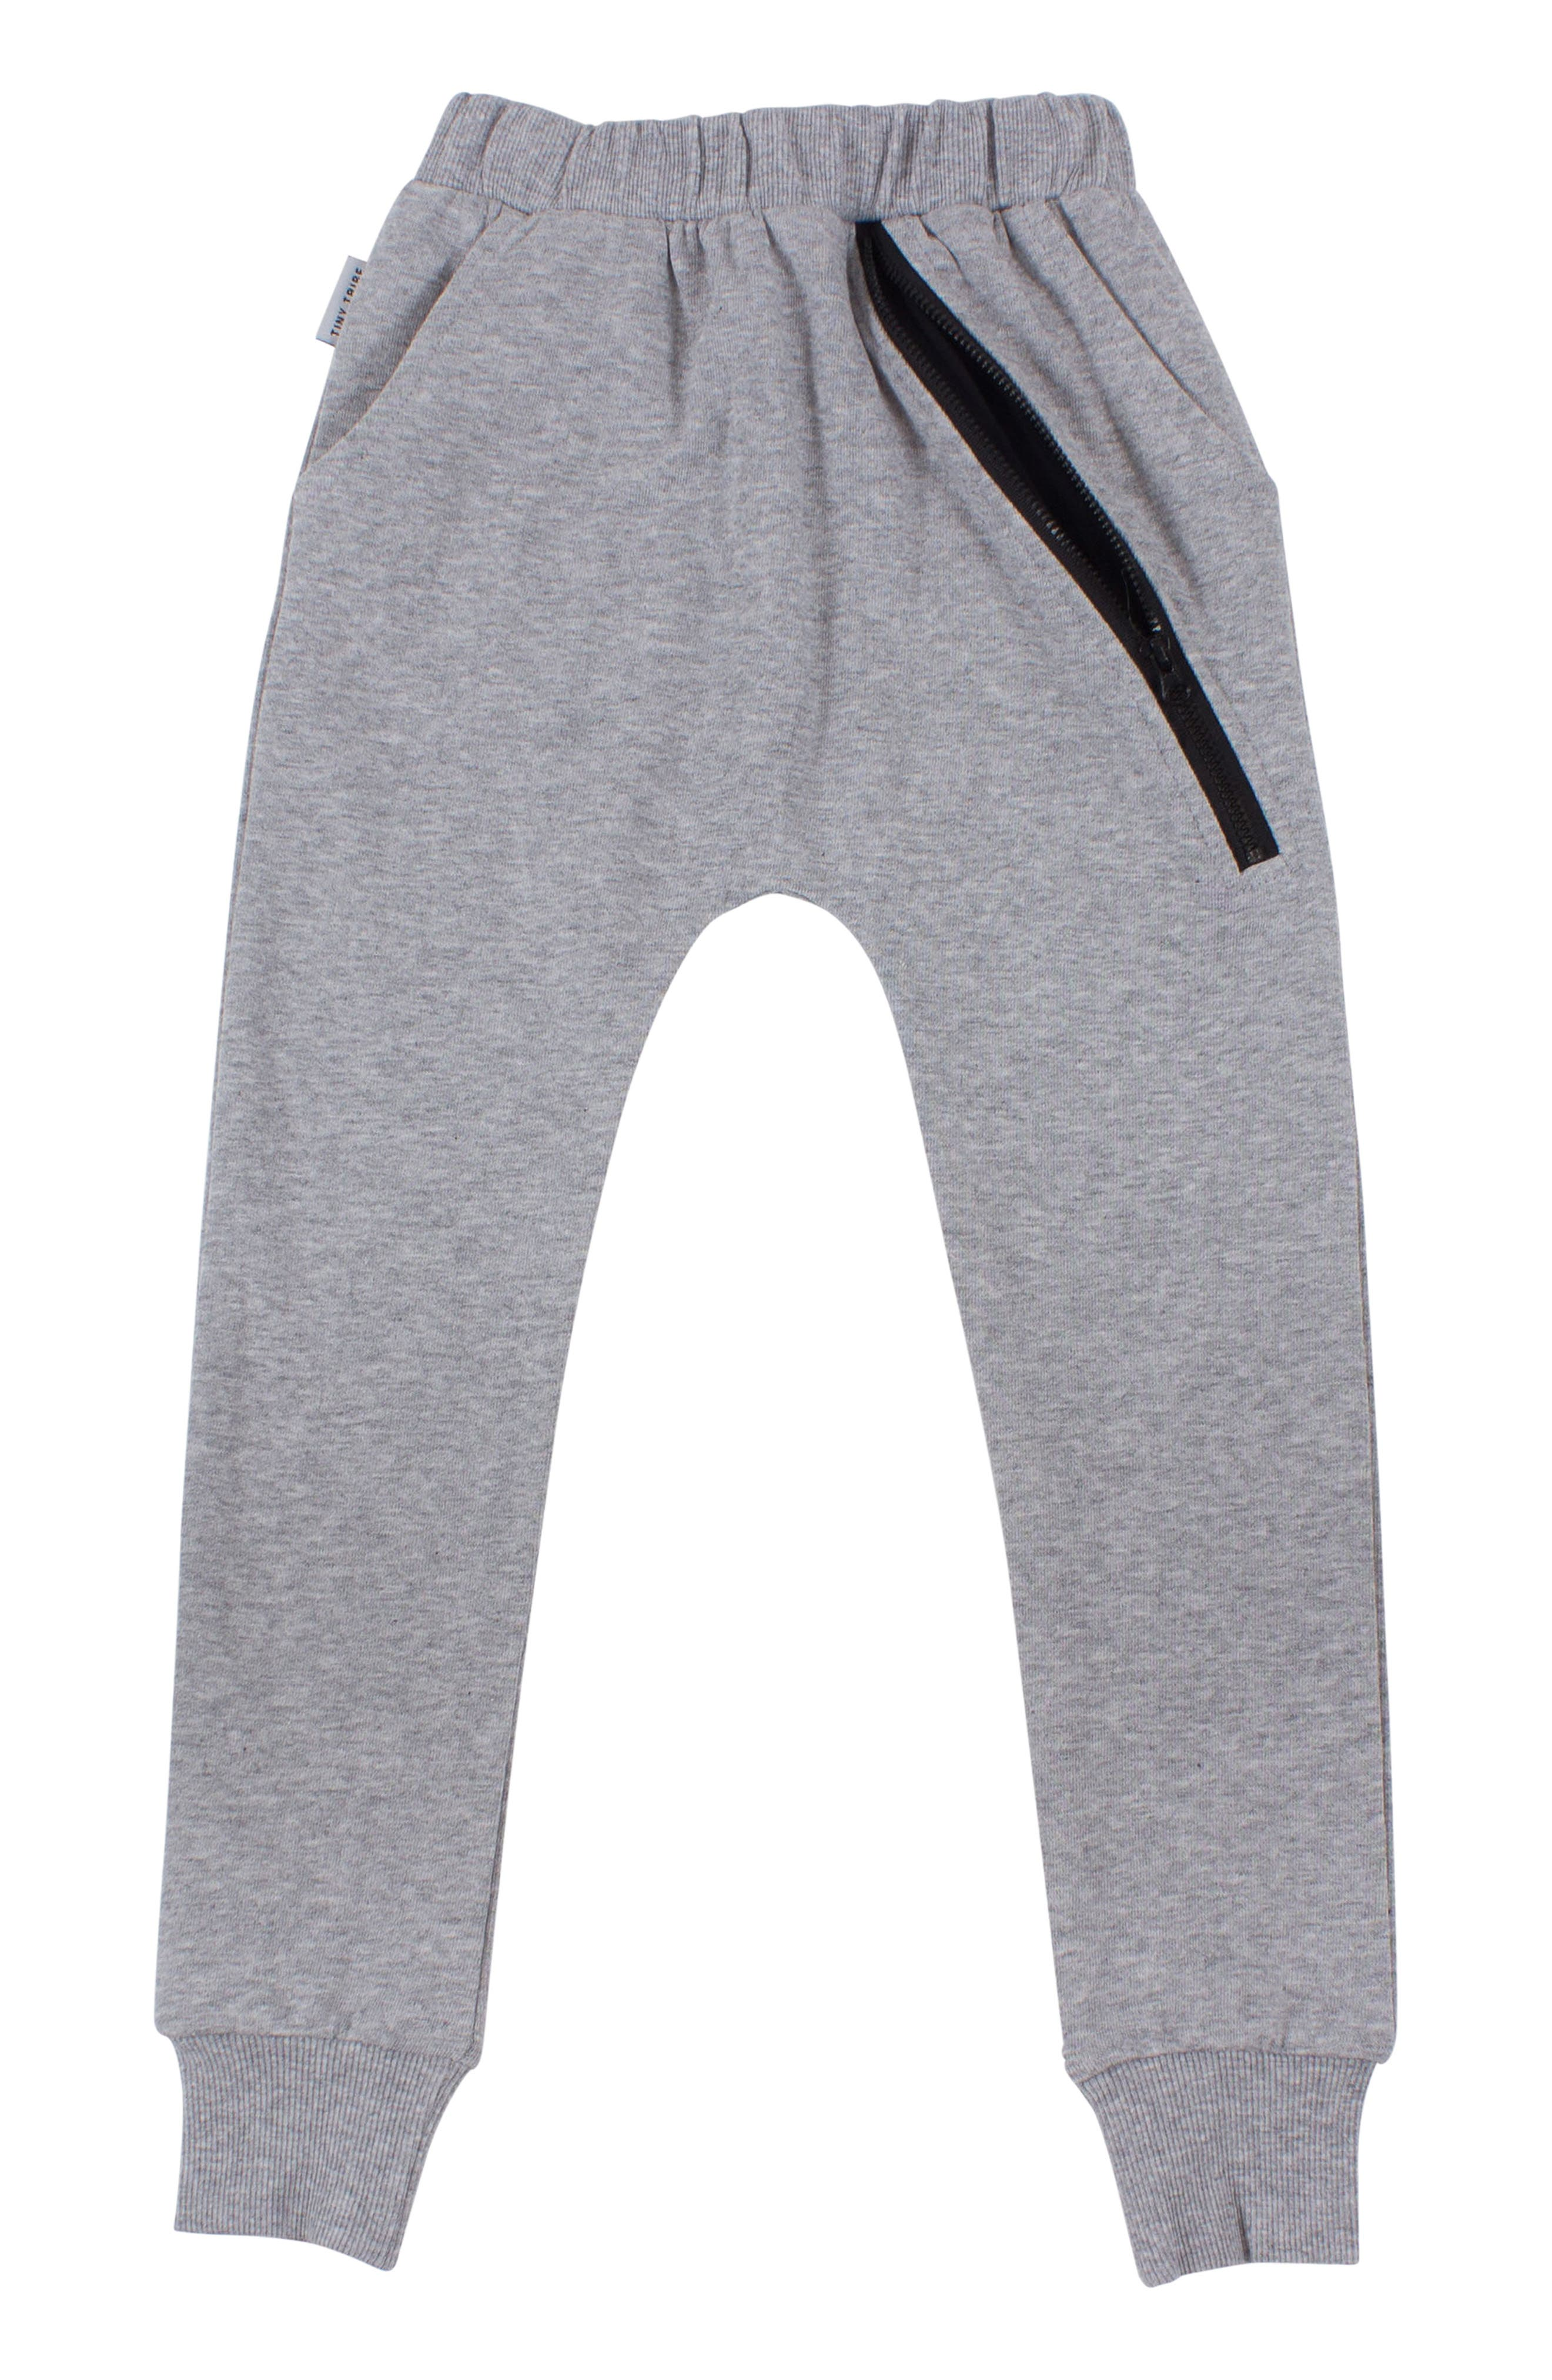 Zip Sweatpants,                         Main,                         color, GREY MARL